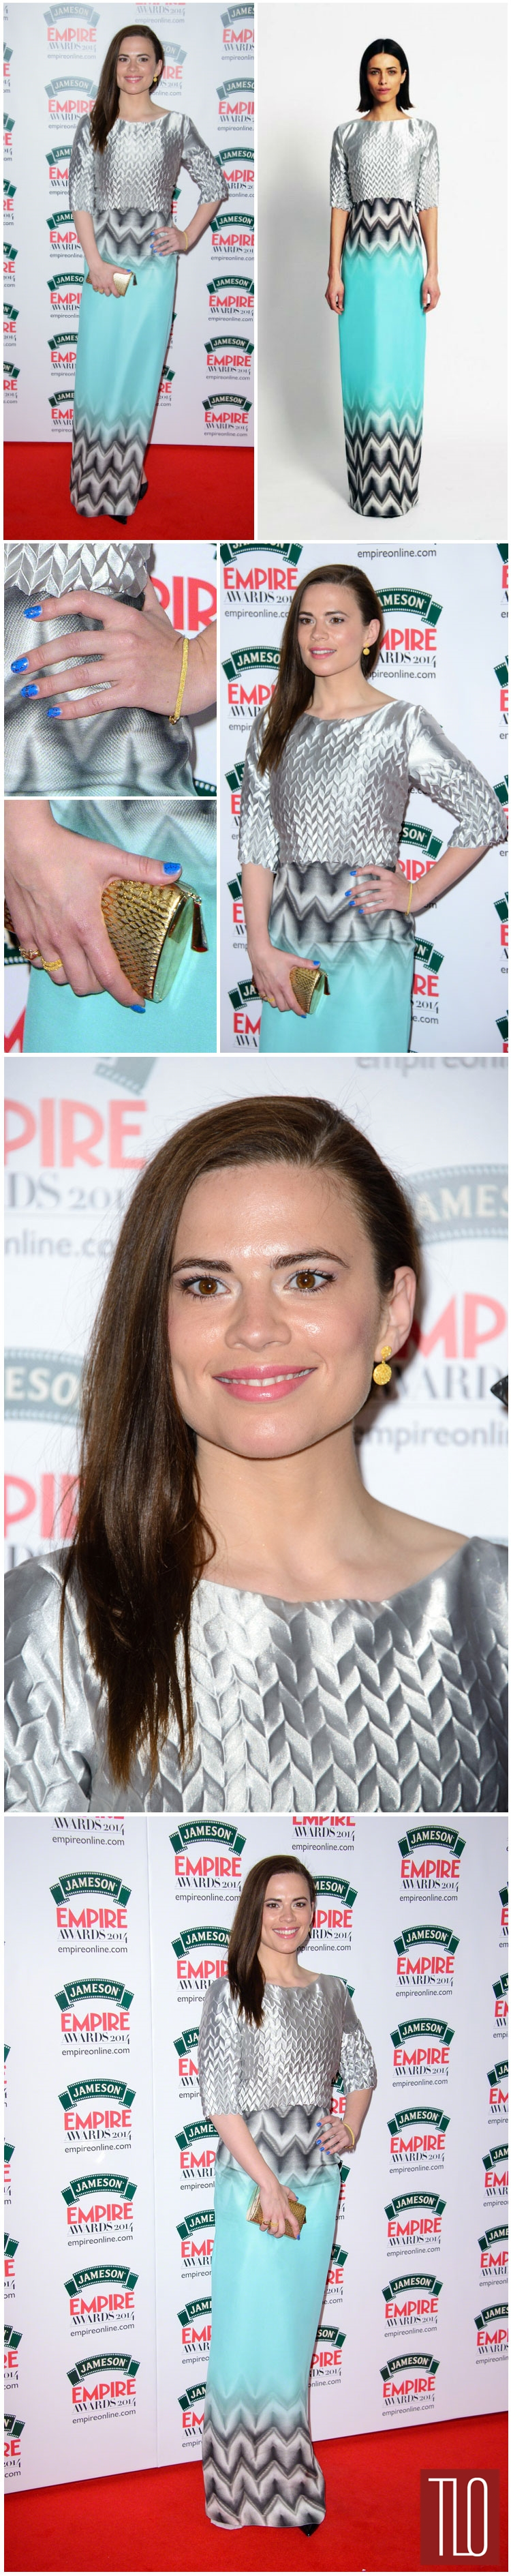 Hayley-Atwell-Georgia-Hardinge-2014-Jameson-Empire-Awards-Tom-Lorenzo-Site-TLO